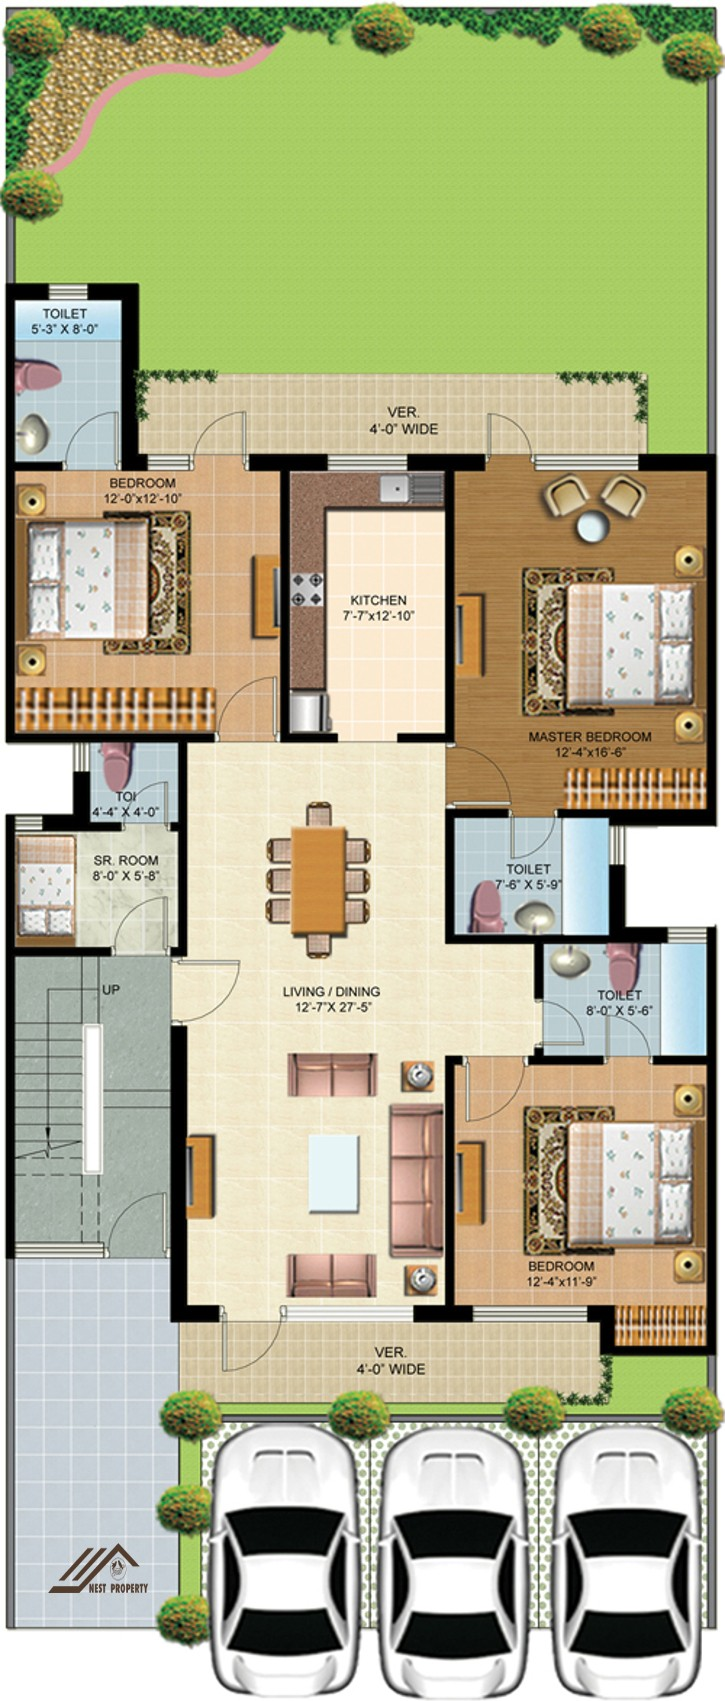 floorplans_limage_231_cassia_fp_big1